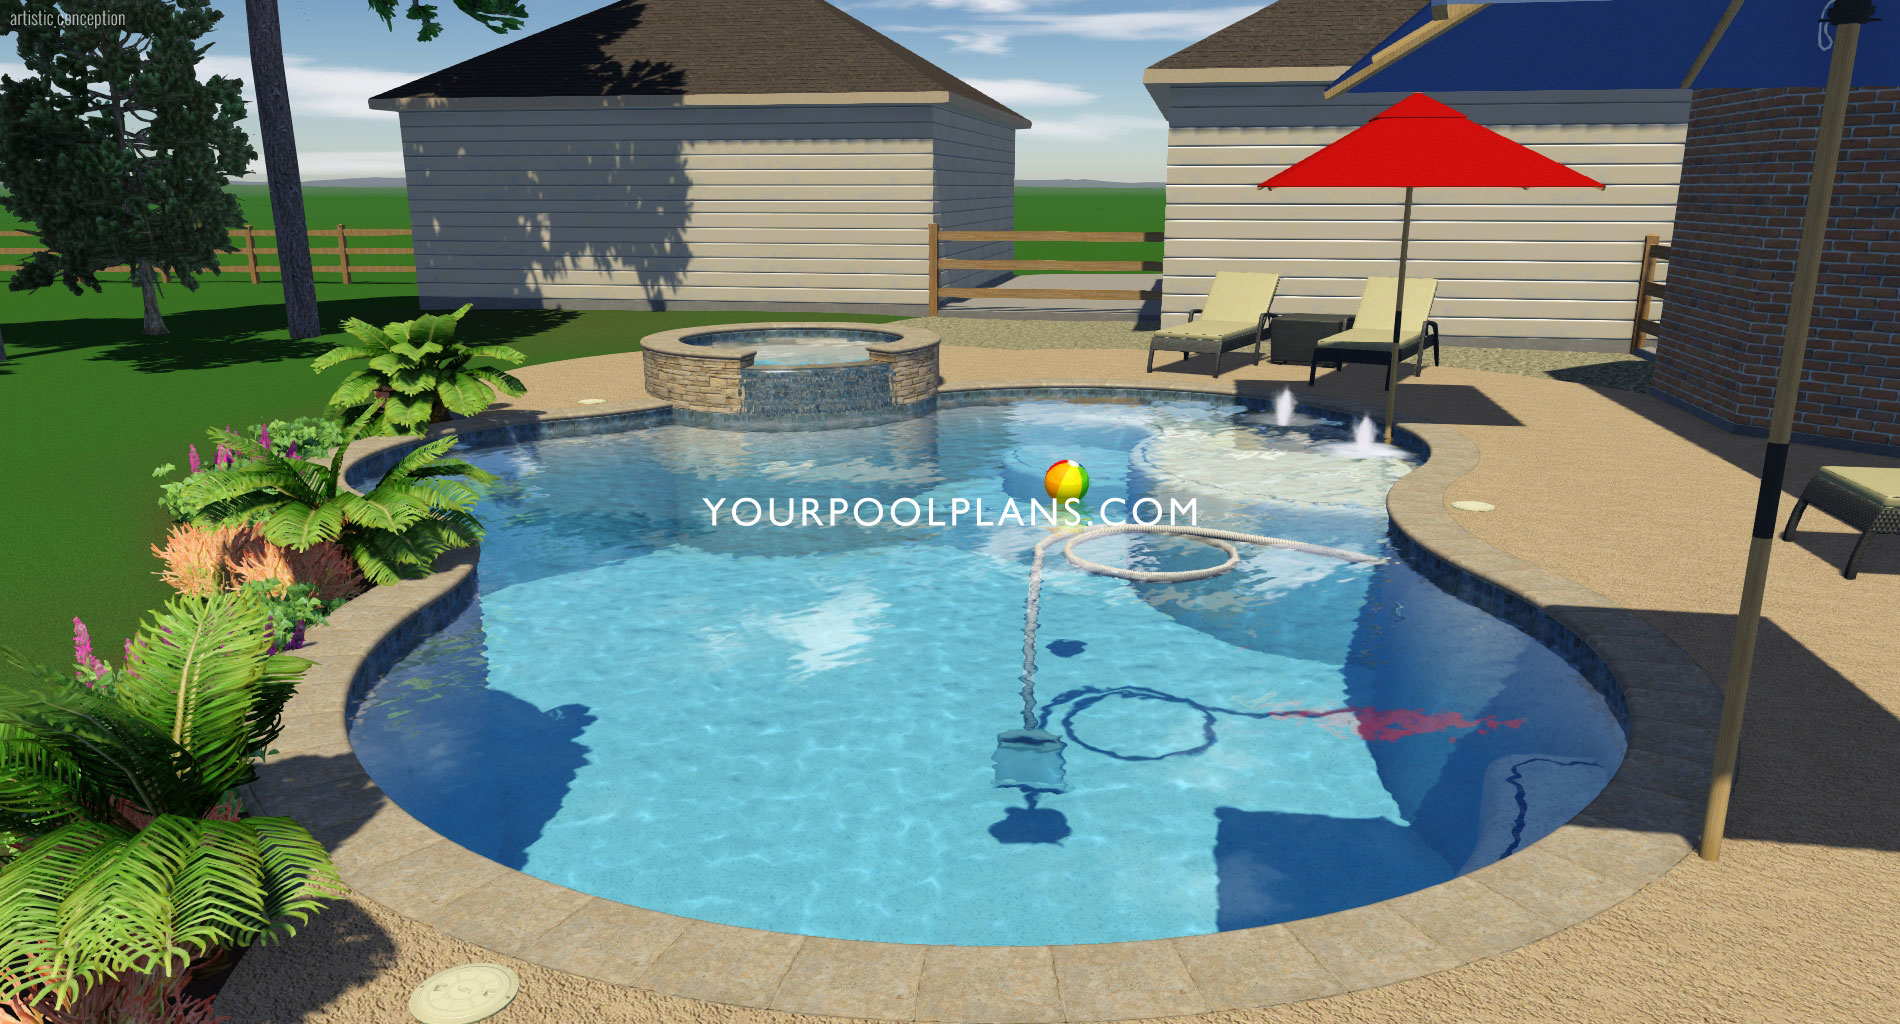 design your own pool software - Fisa